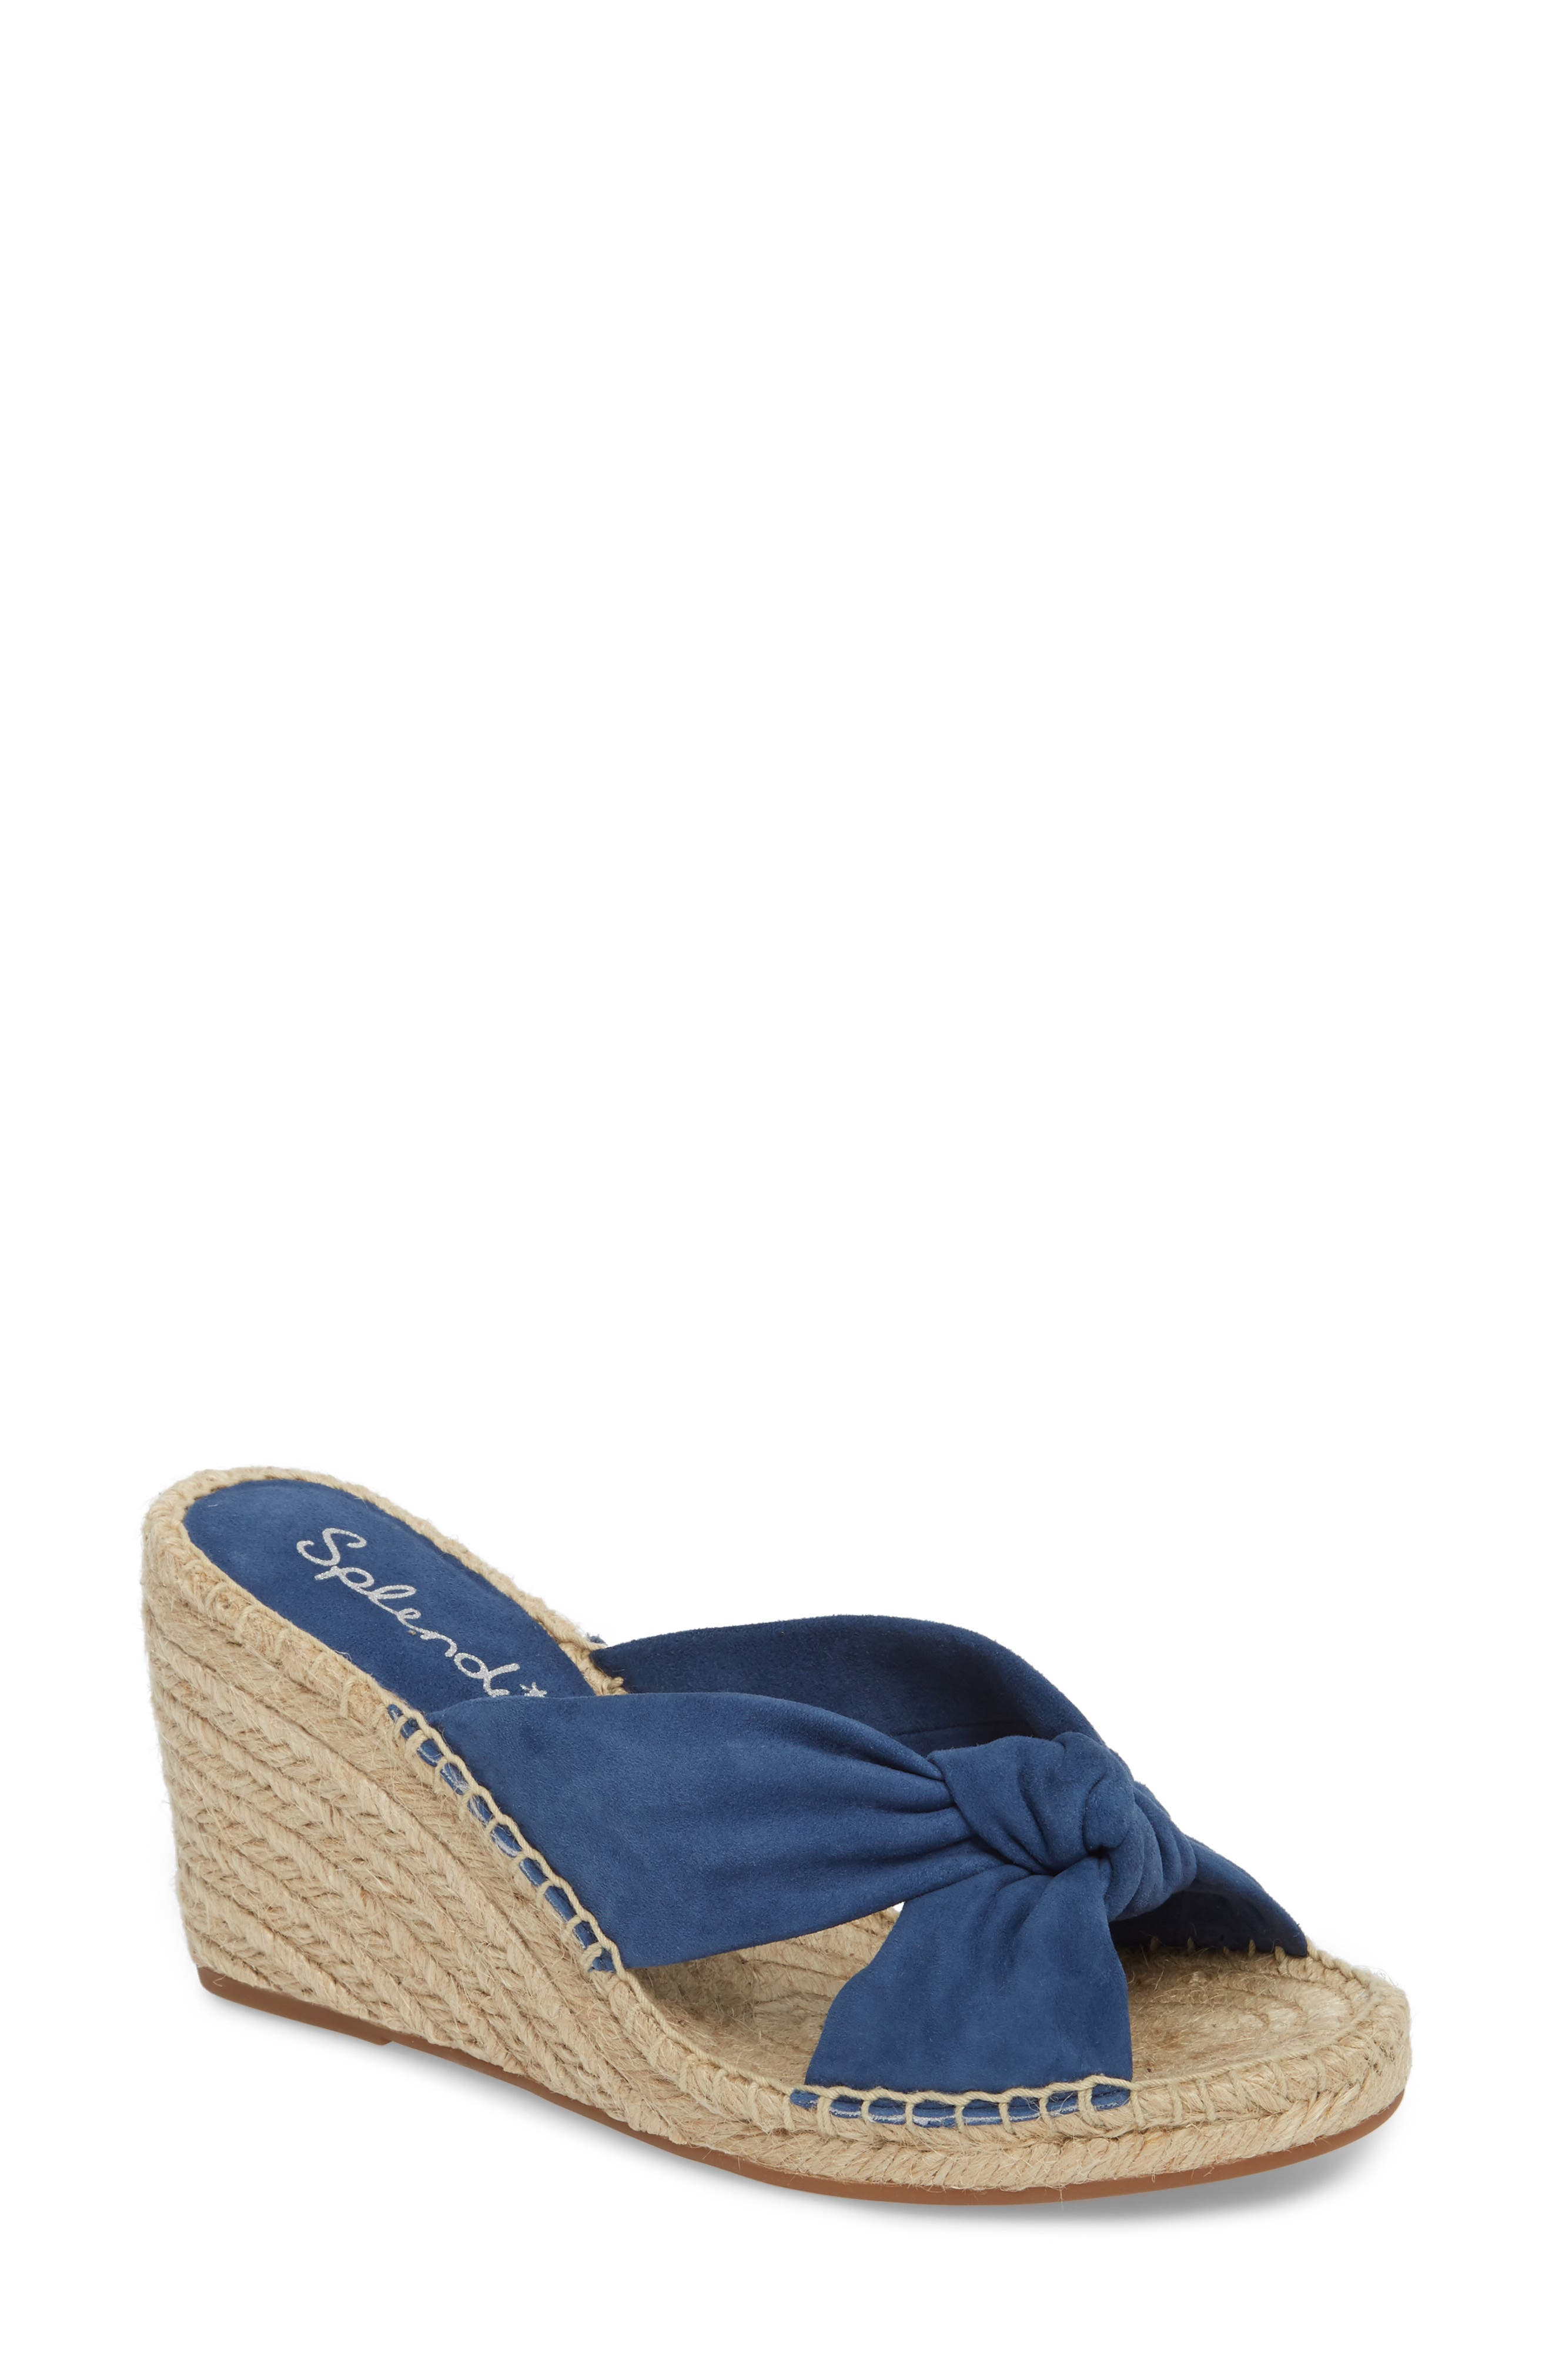 Splendid Bautista Knotted Wedge Sandal (Women)